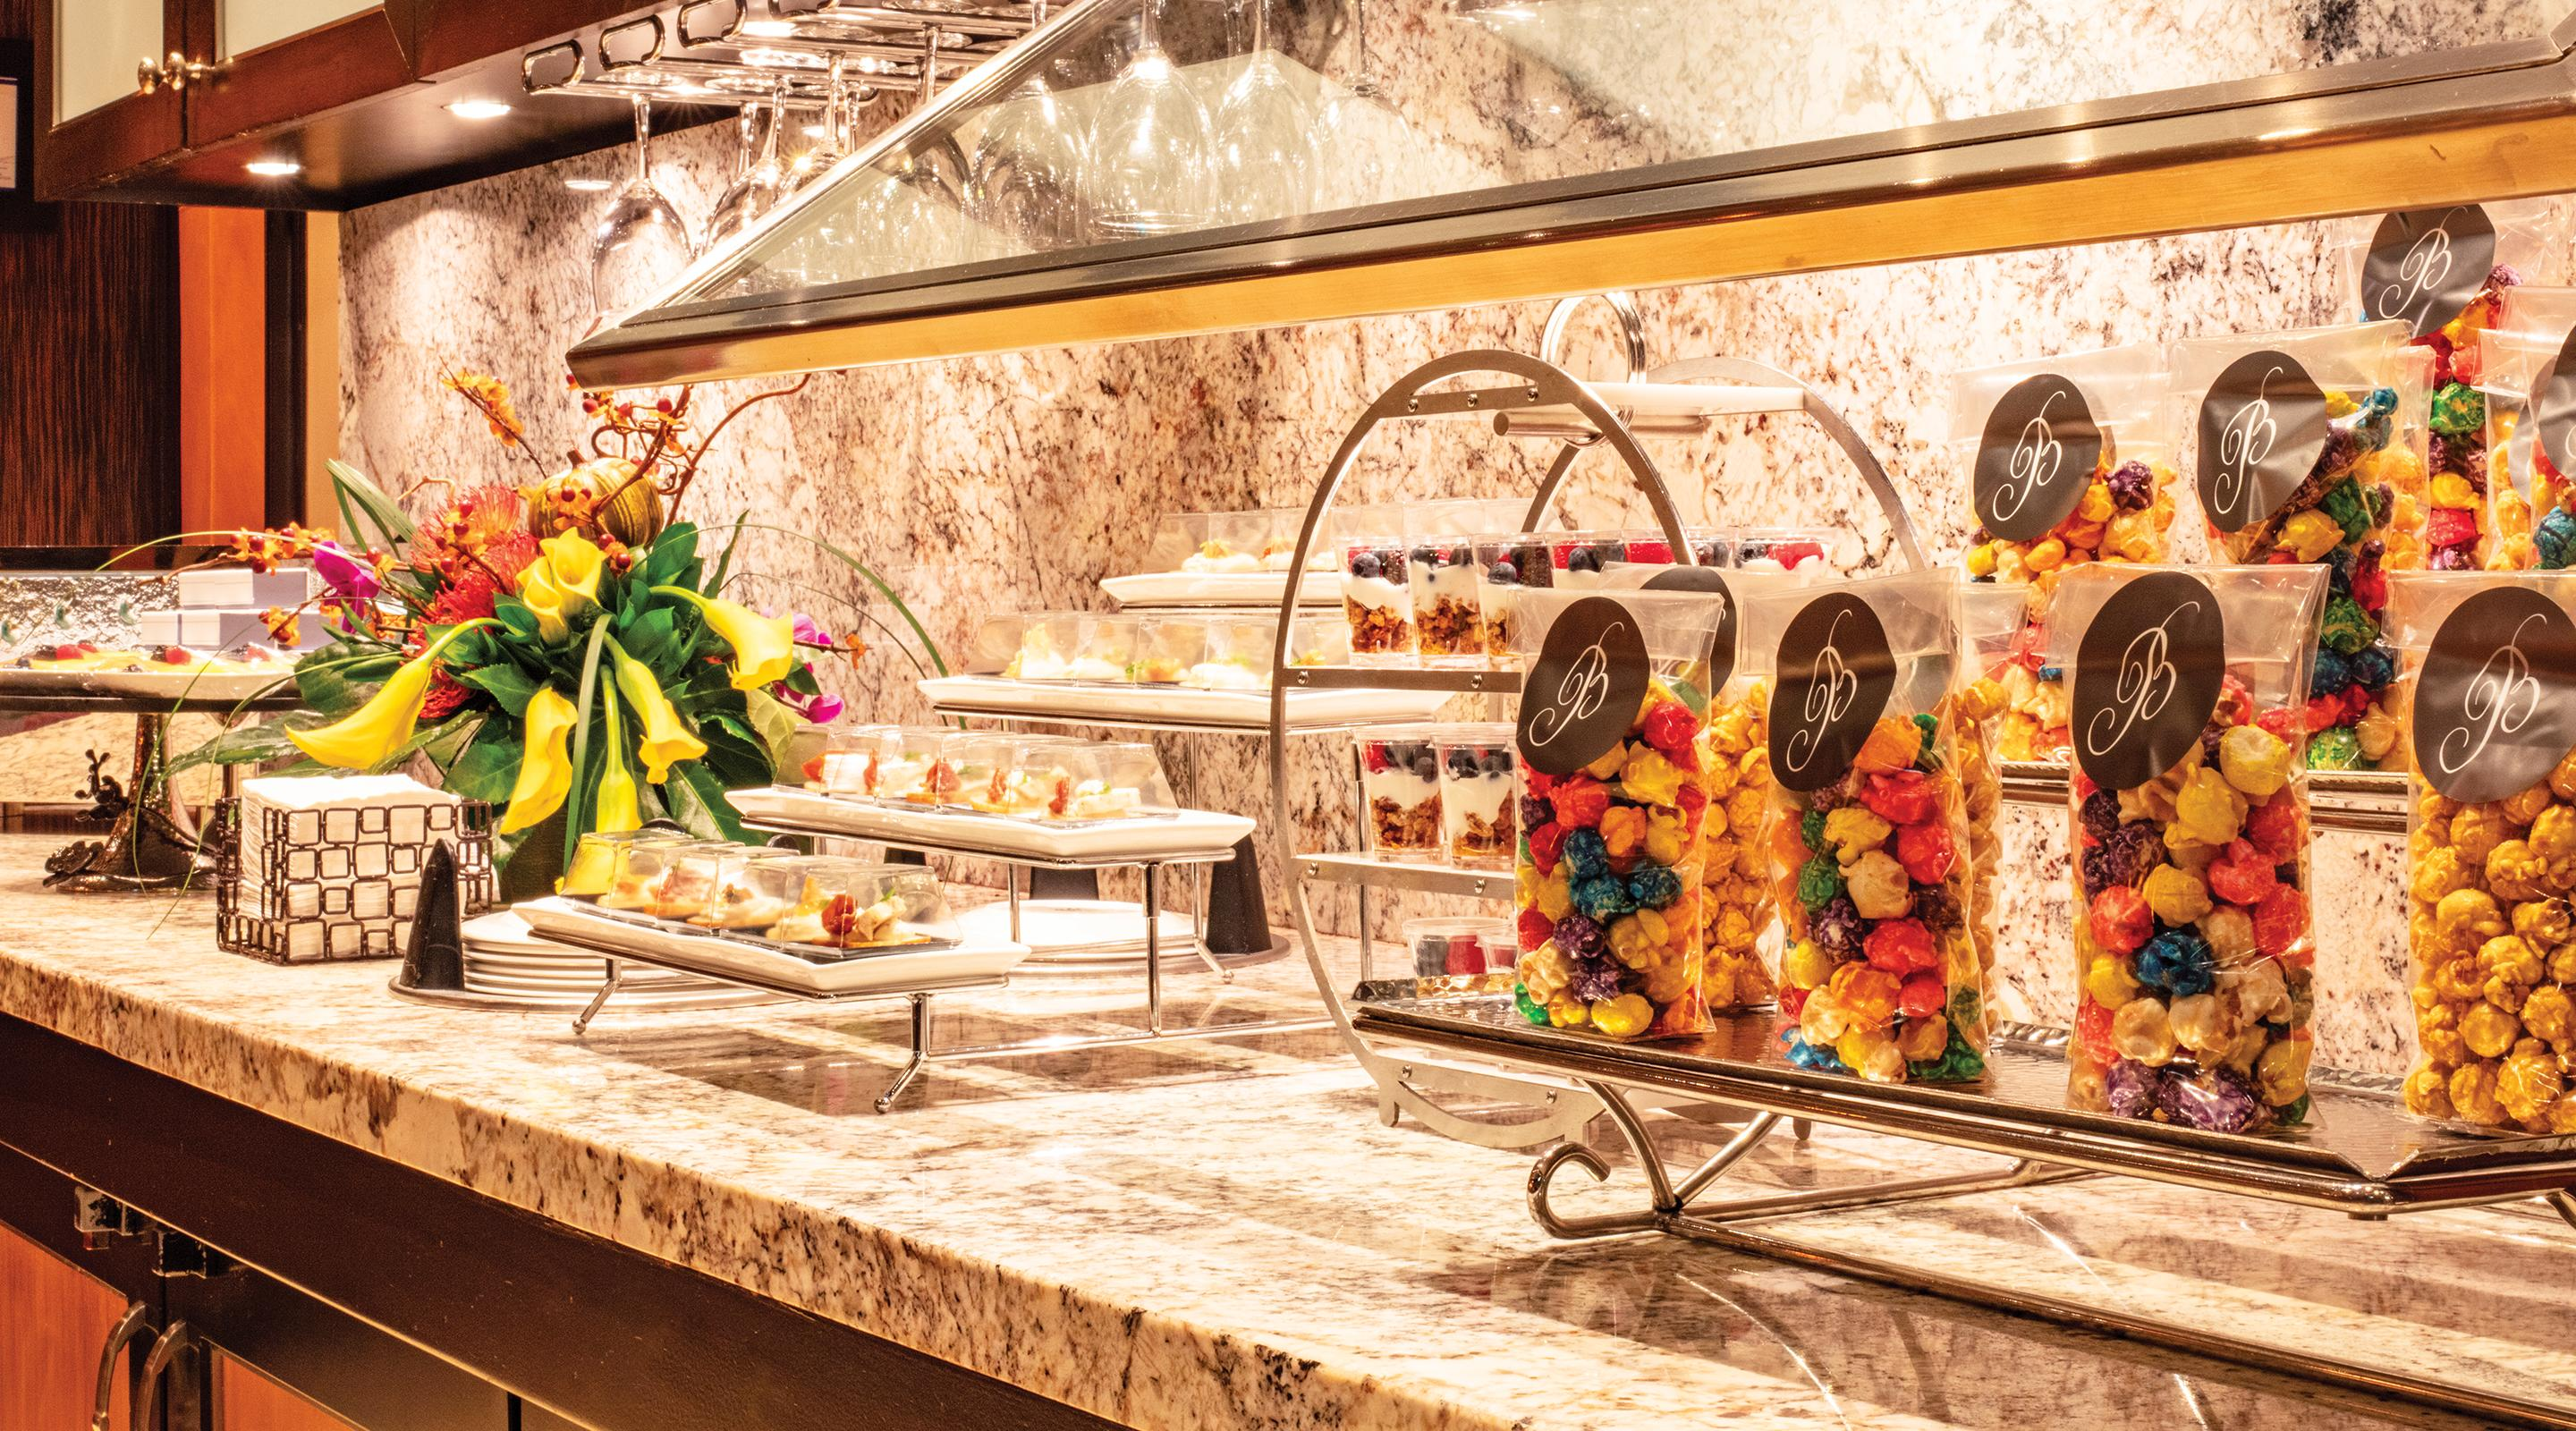 A dessert counter bar in VIP Lounge lobby.